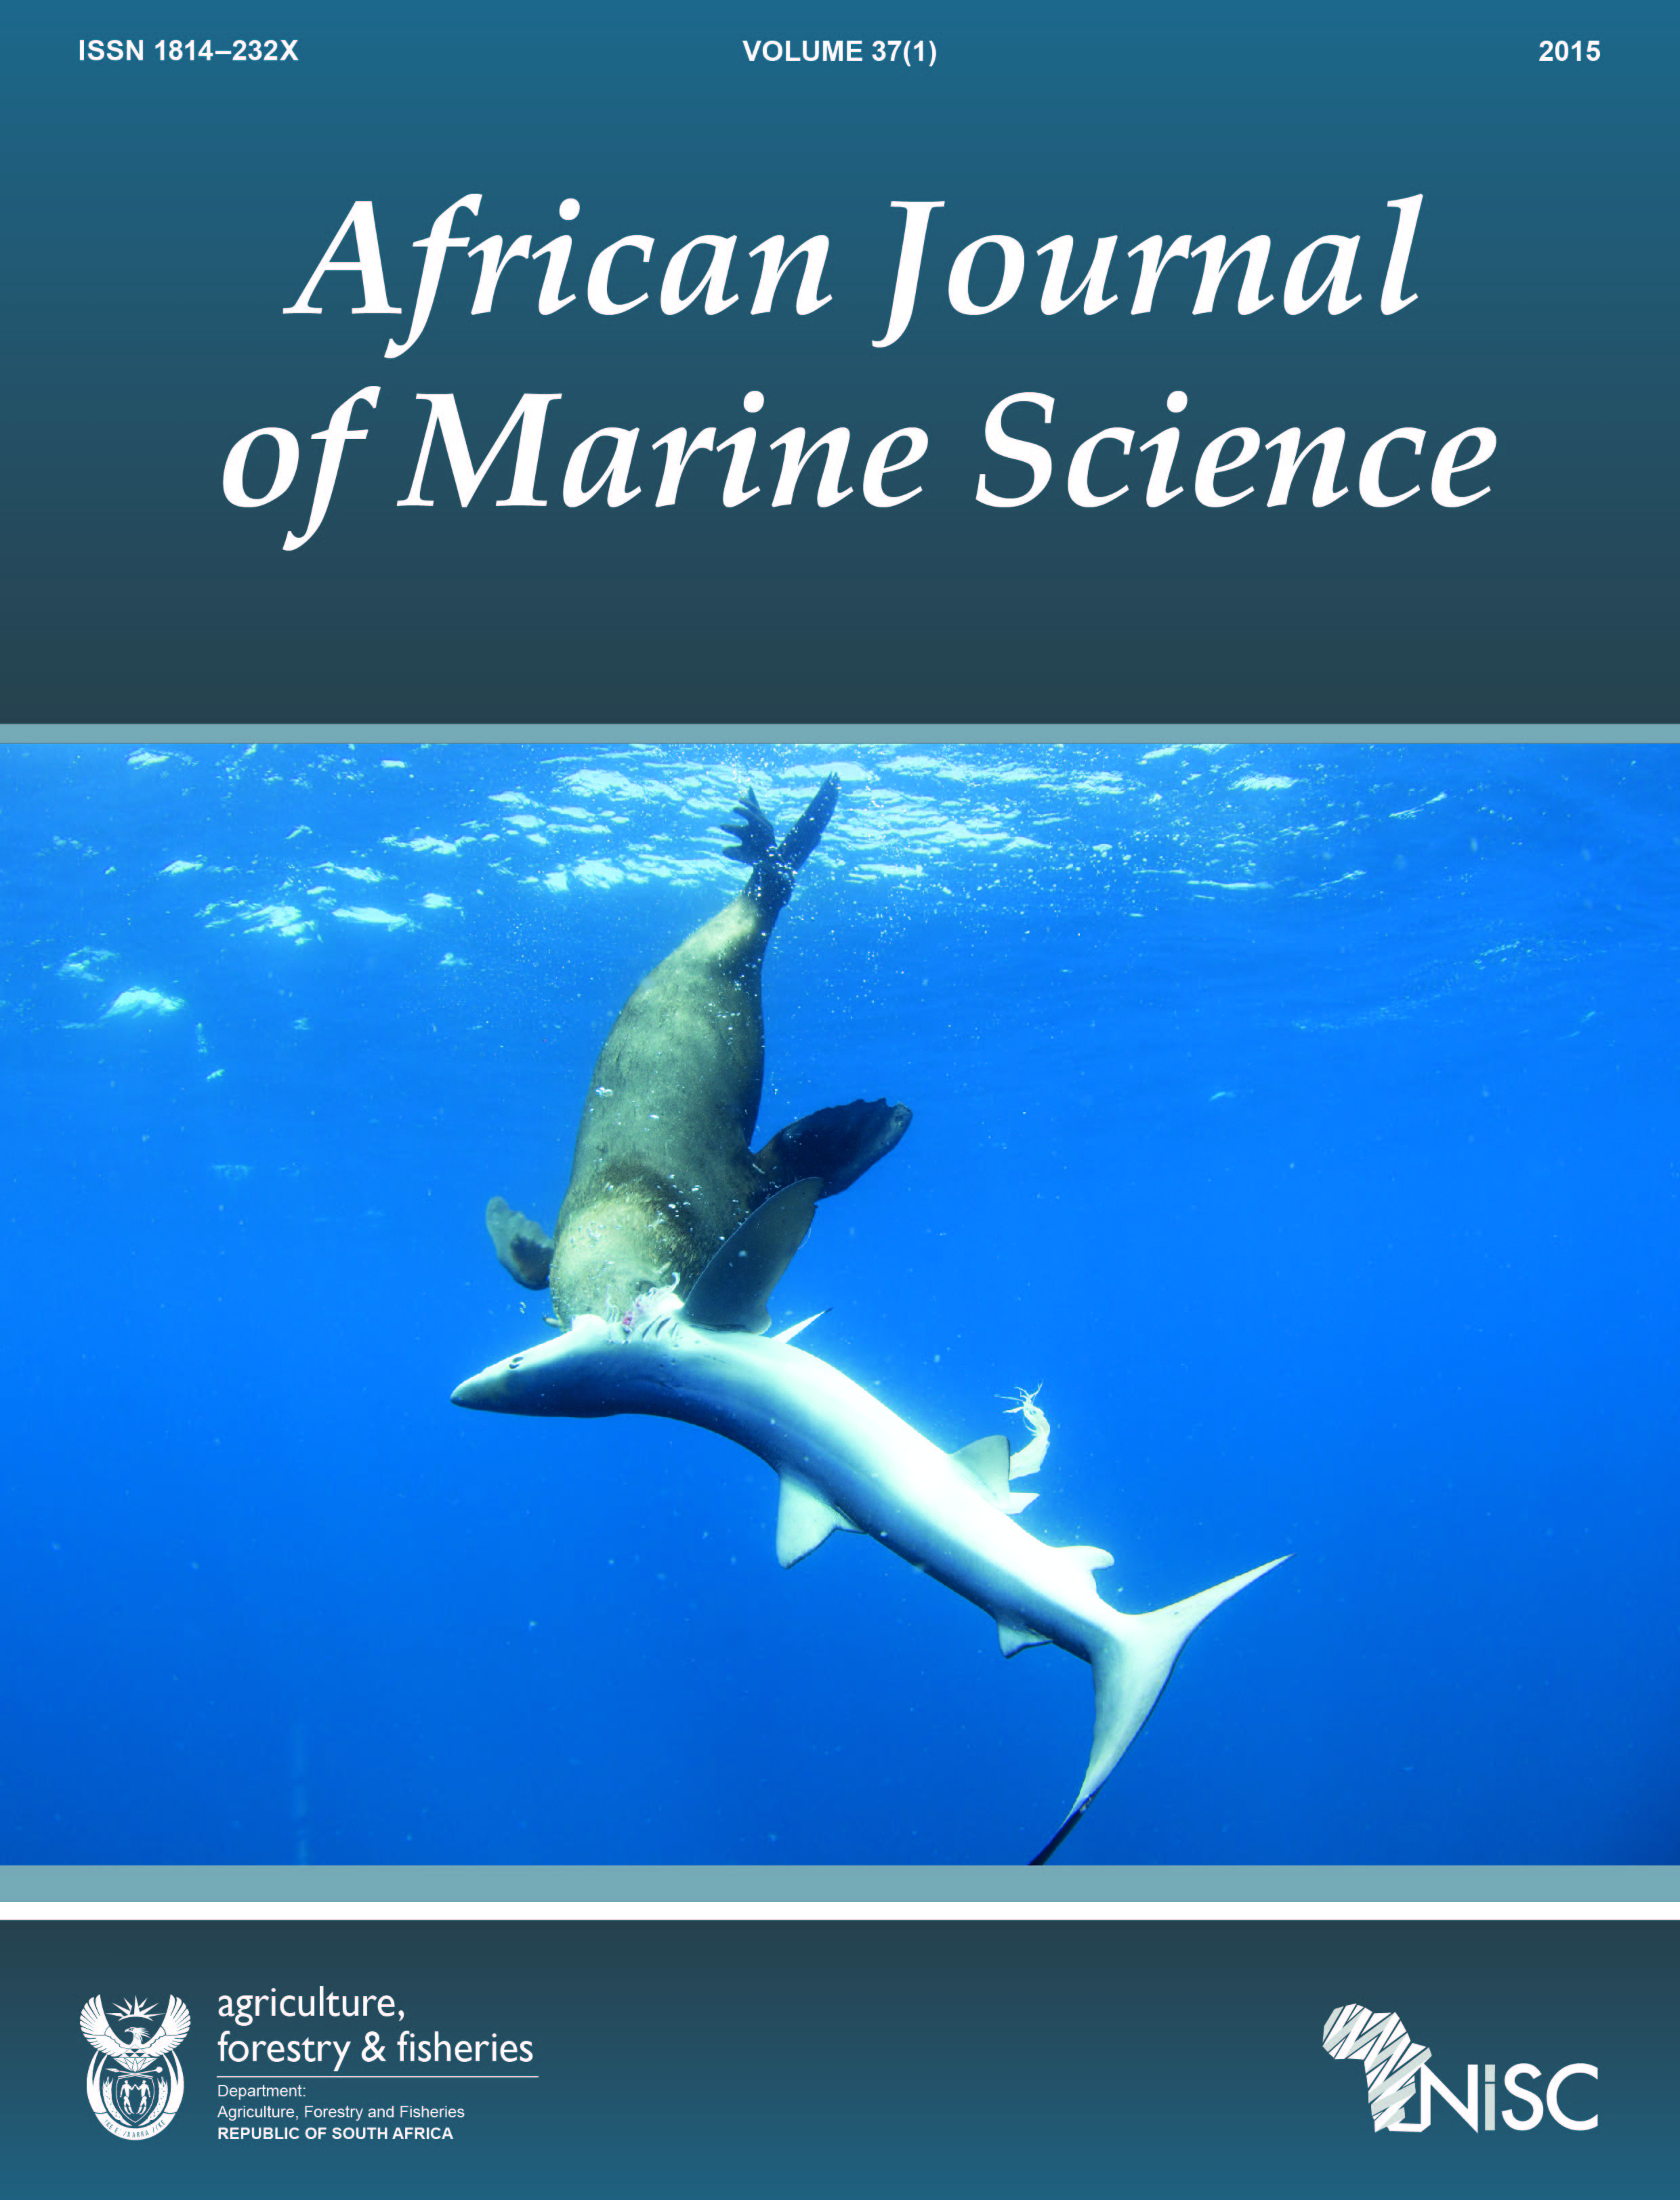 marine biology research paper Marinebio conservation society ~ marine biology, ocean, we invite you to explore the depths of marinebio and find out about marine species, ocean conservation.